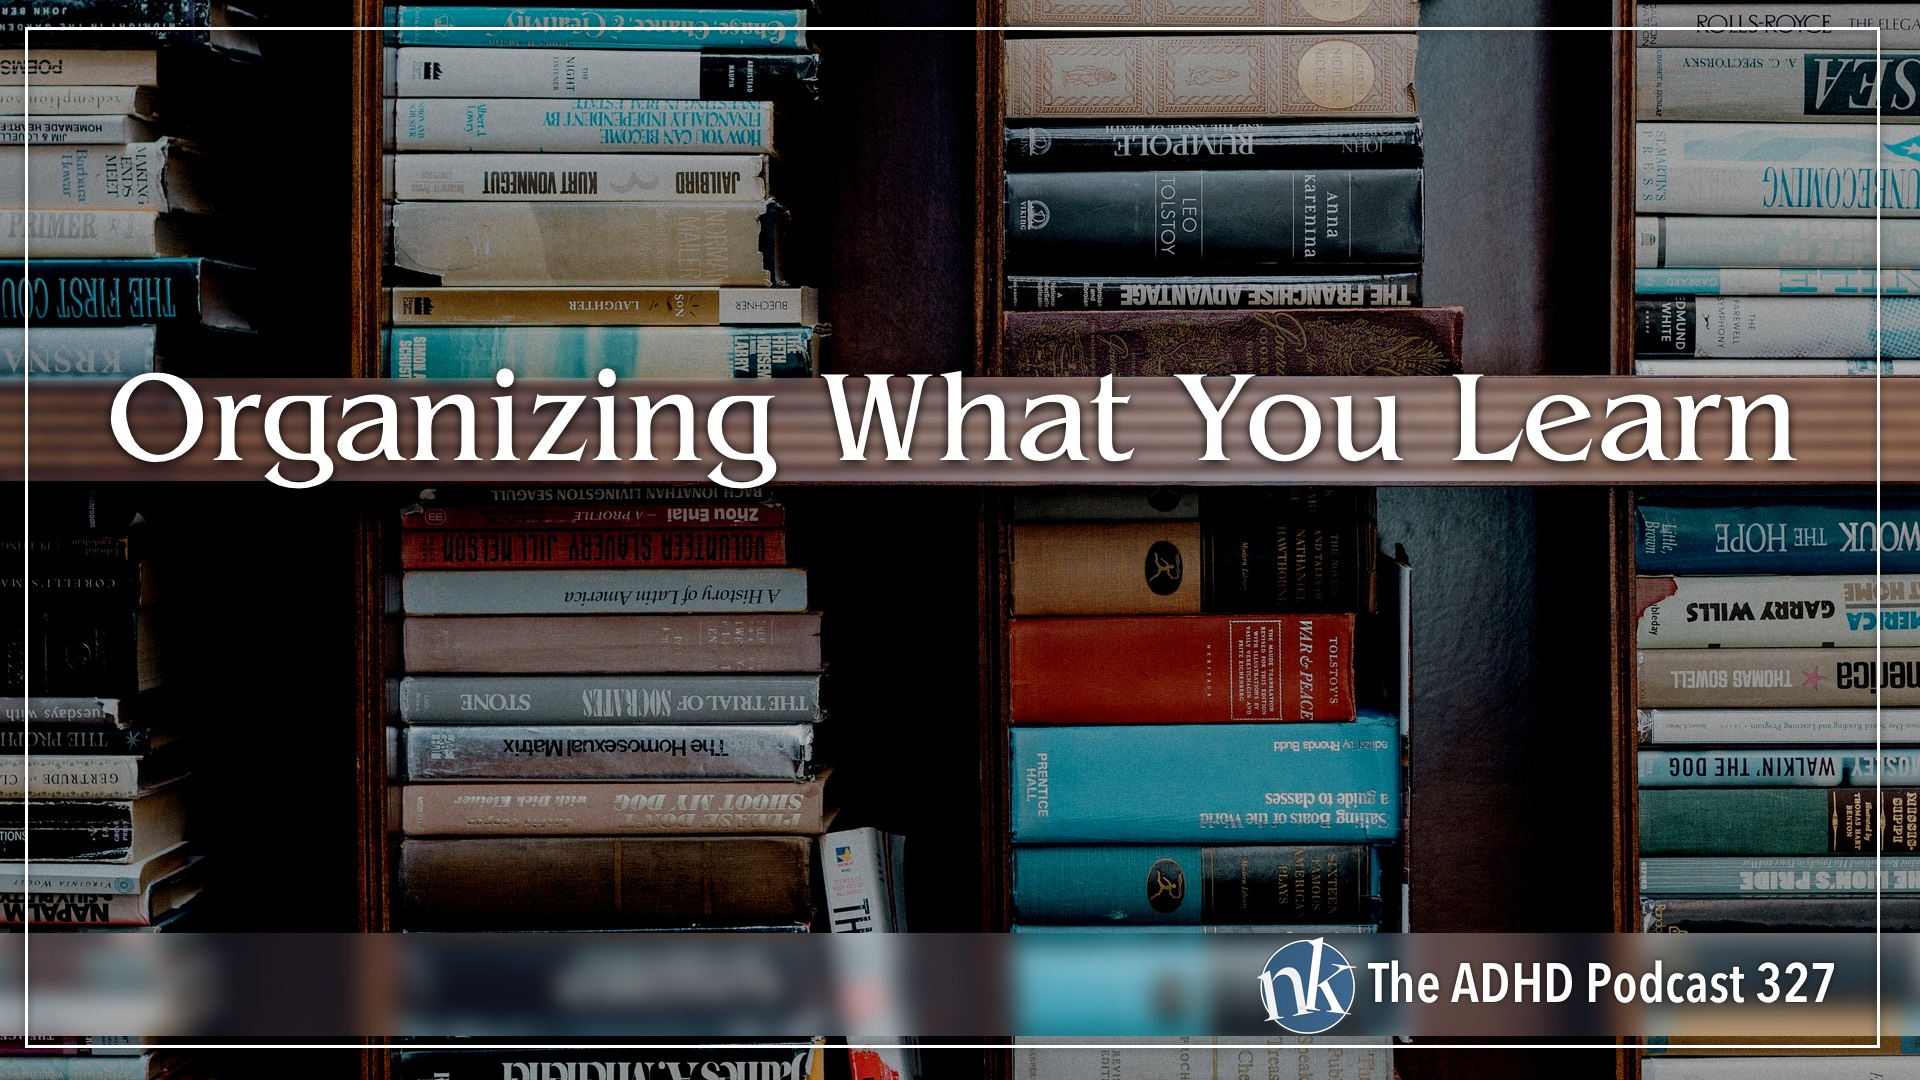 Listen to Organizing What You Learn on Taking Control: The ADHD Podcast